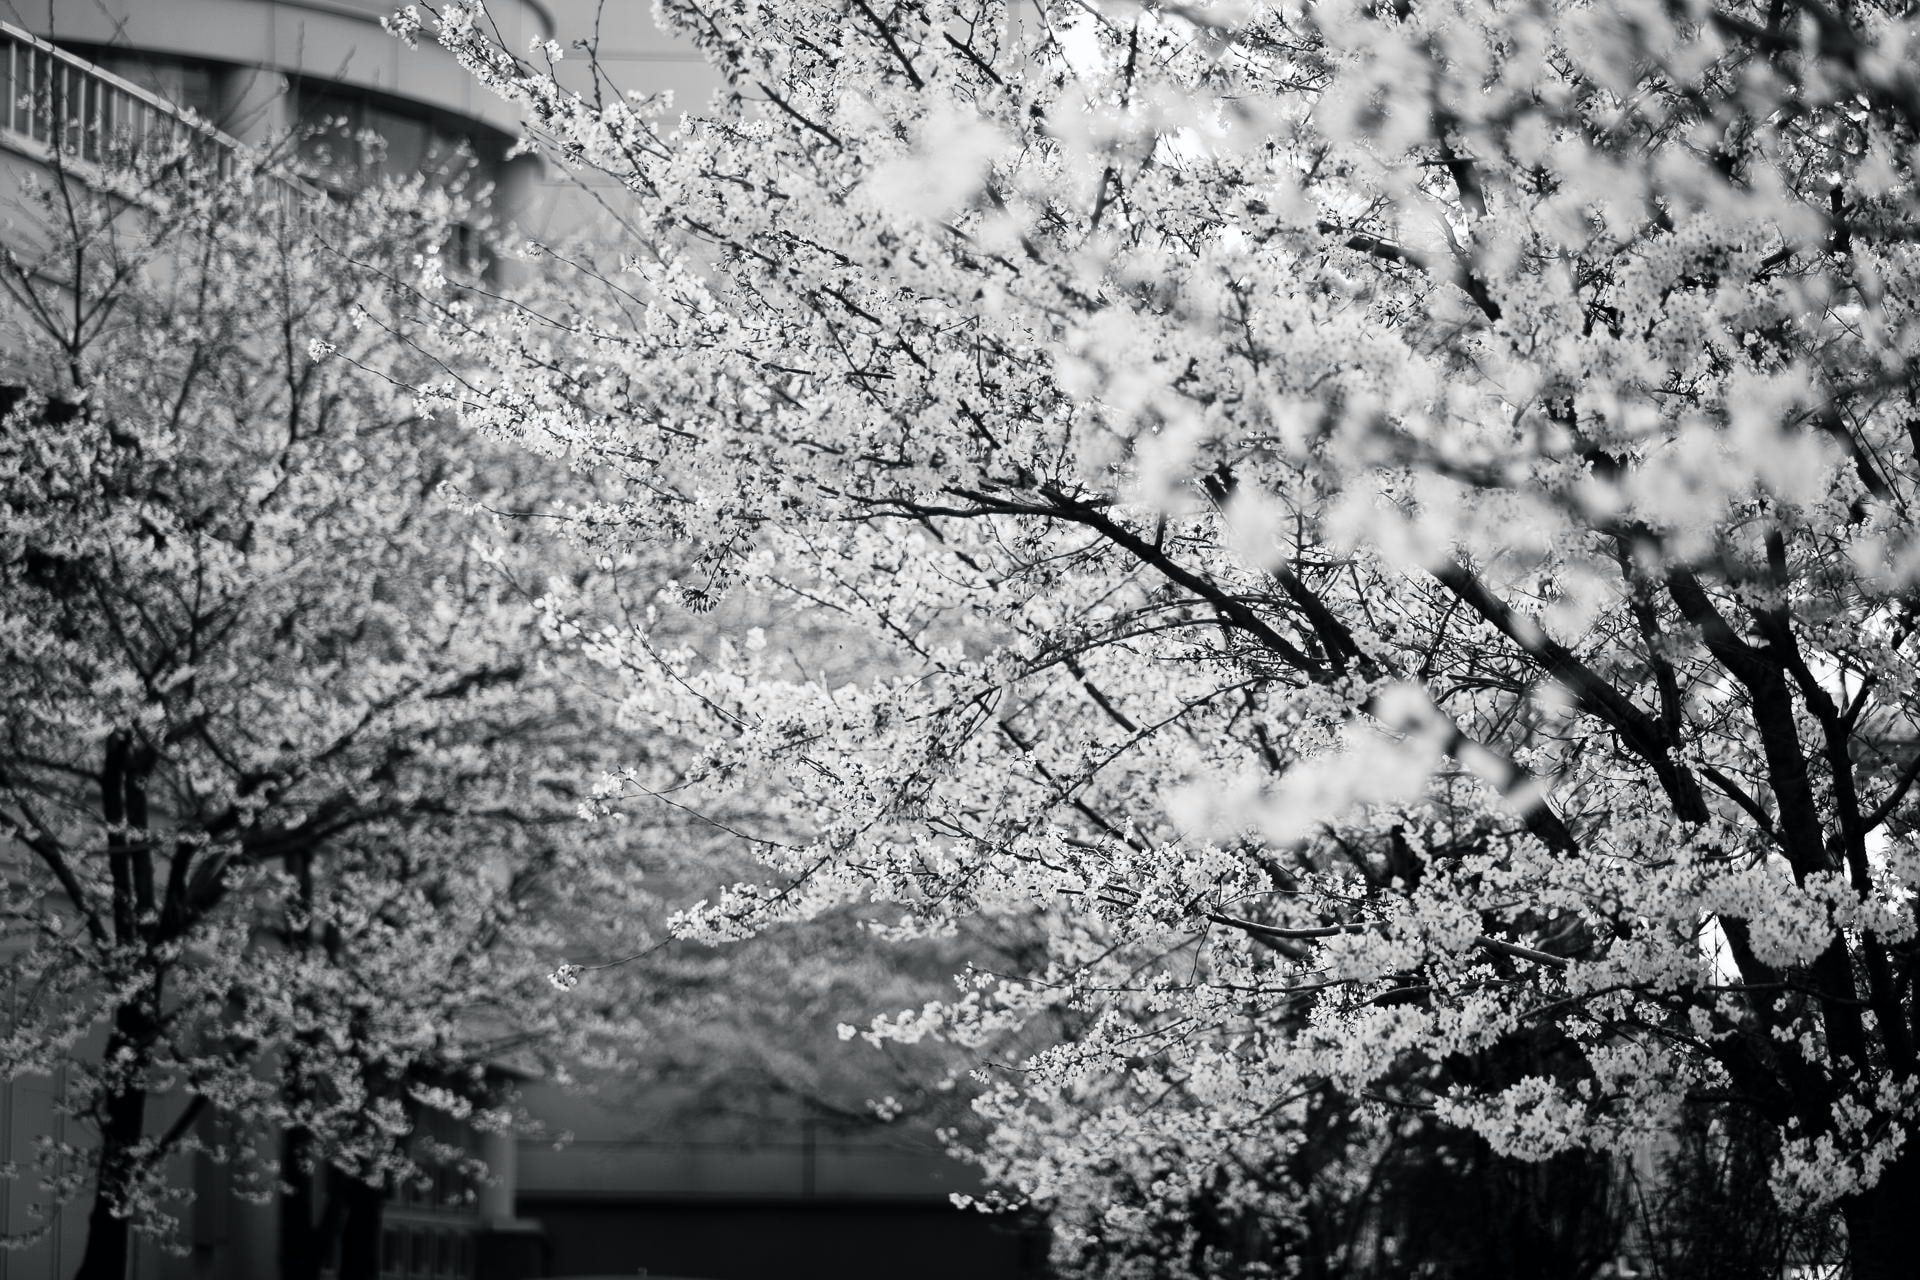 Black and white picture of cherry blossom tree in bloom in Spring, 두호고등학교